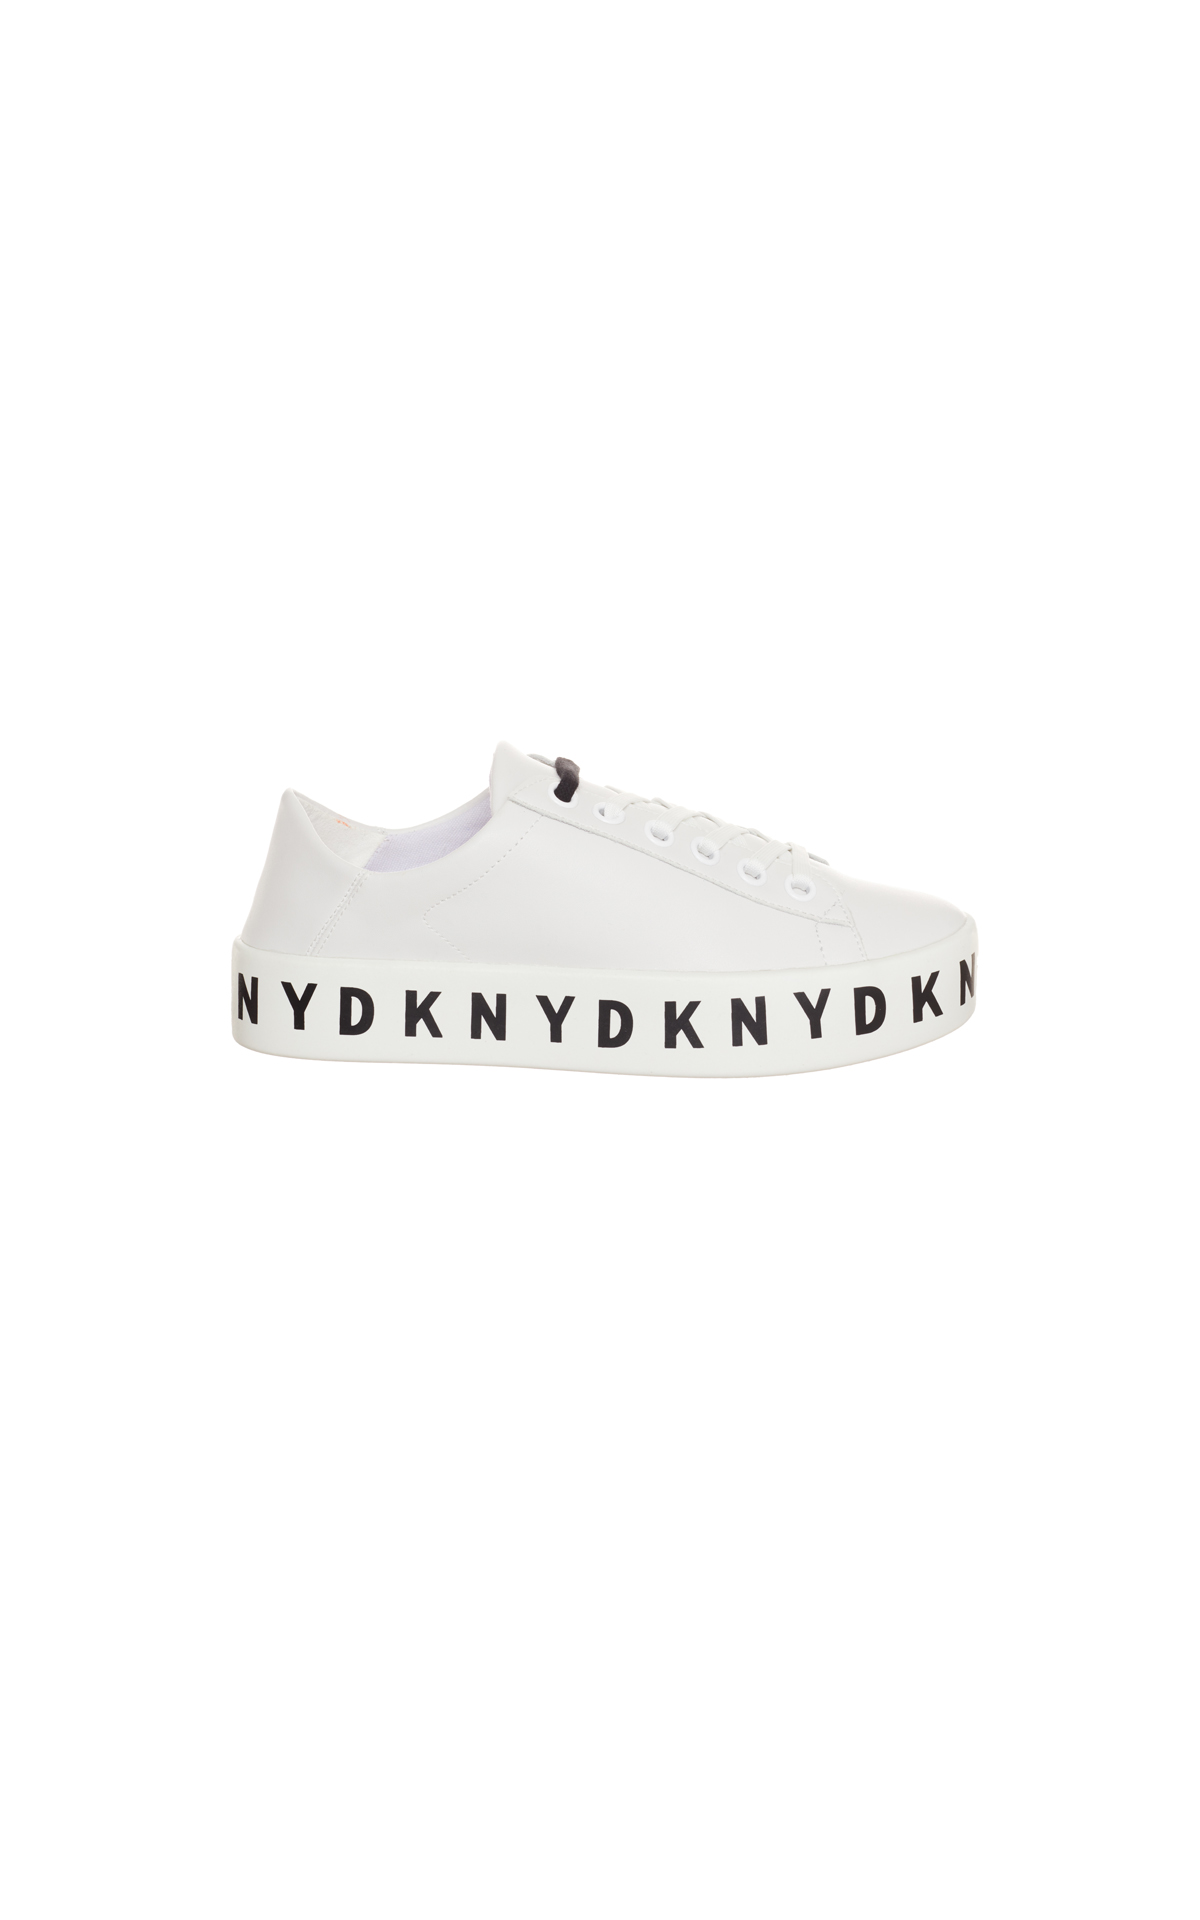 DKNY Logo sneakers from Bicester Village